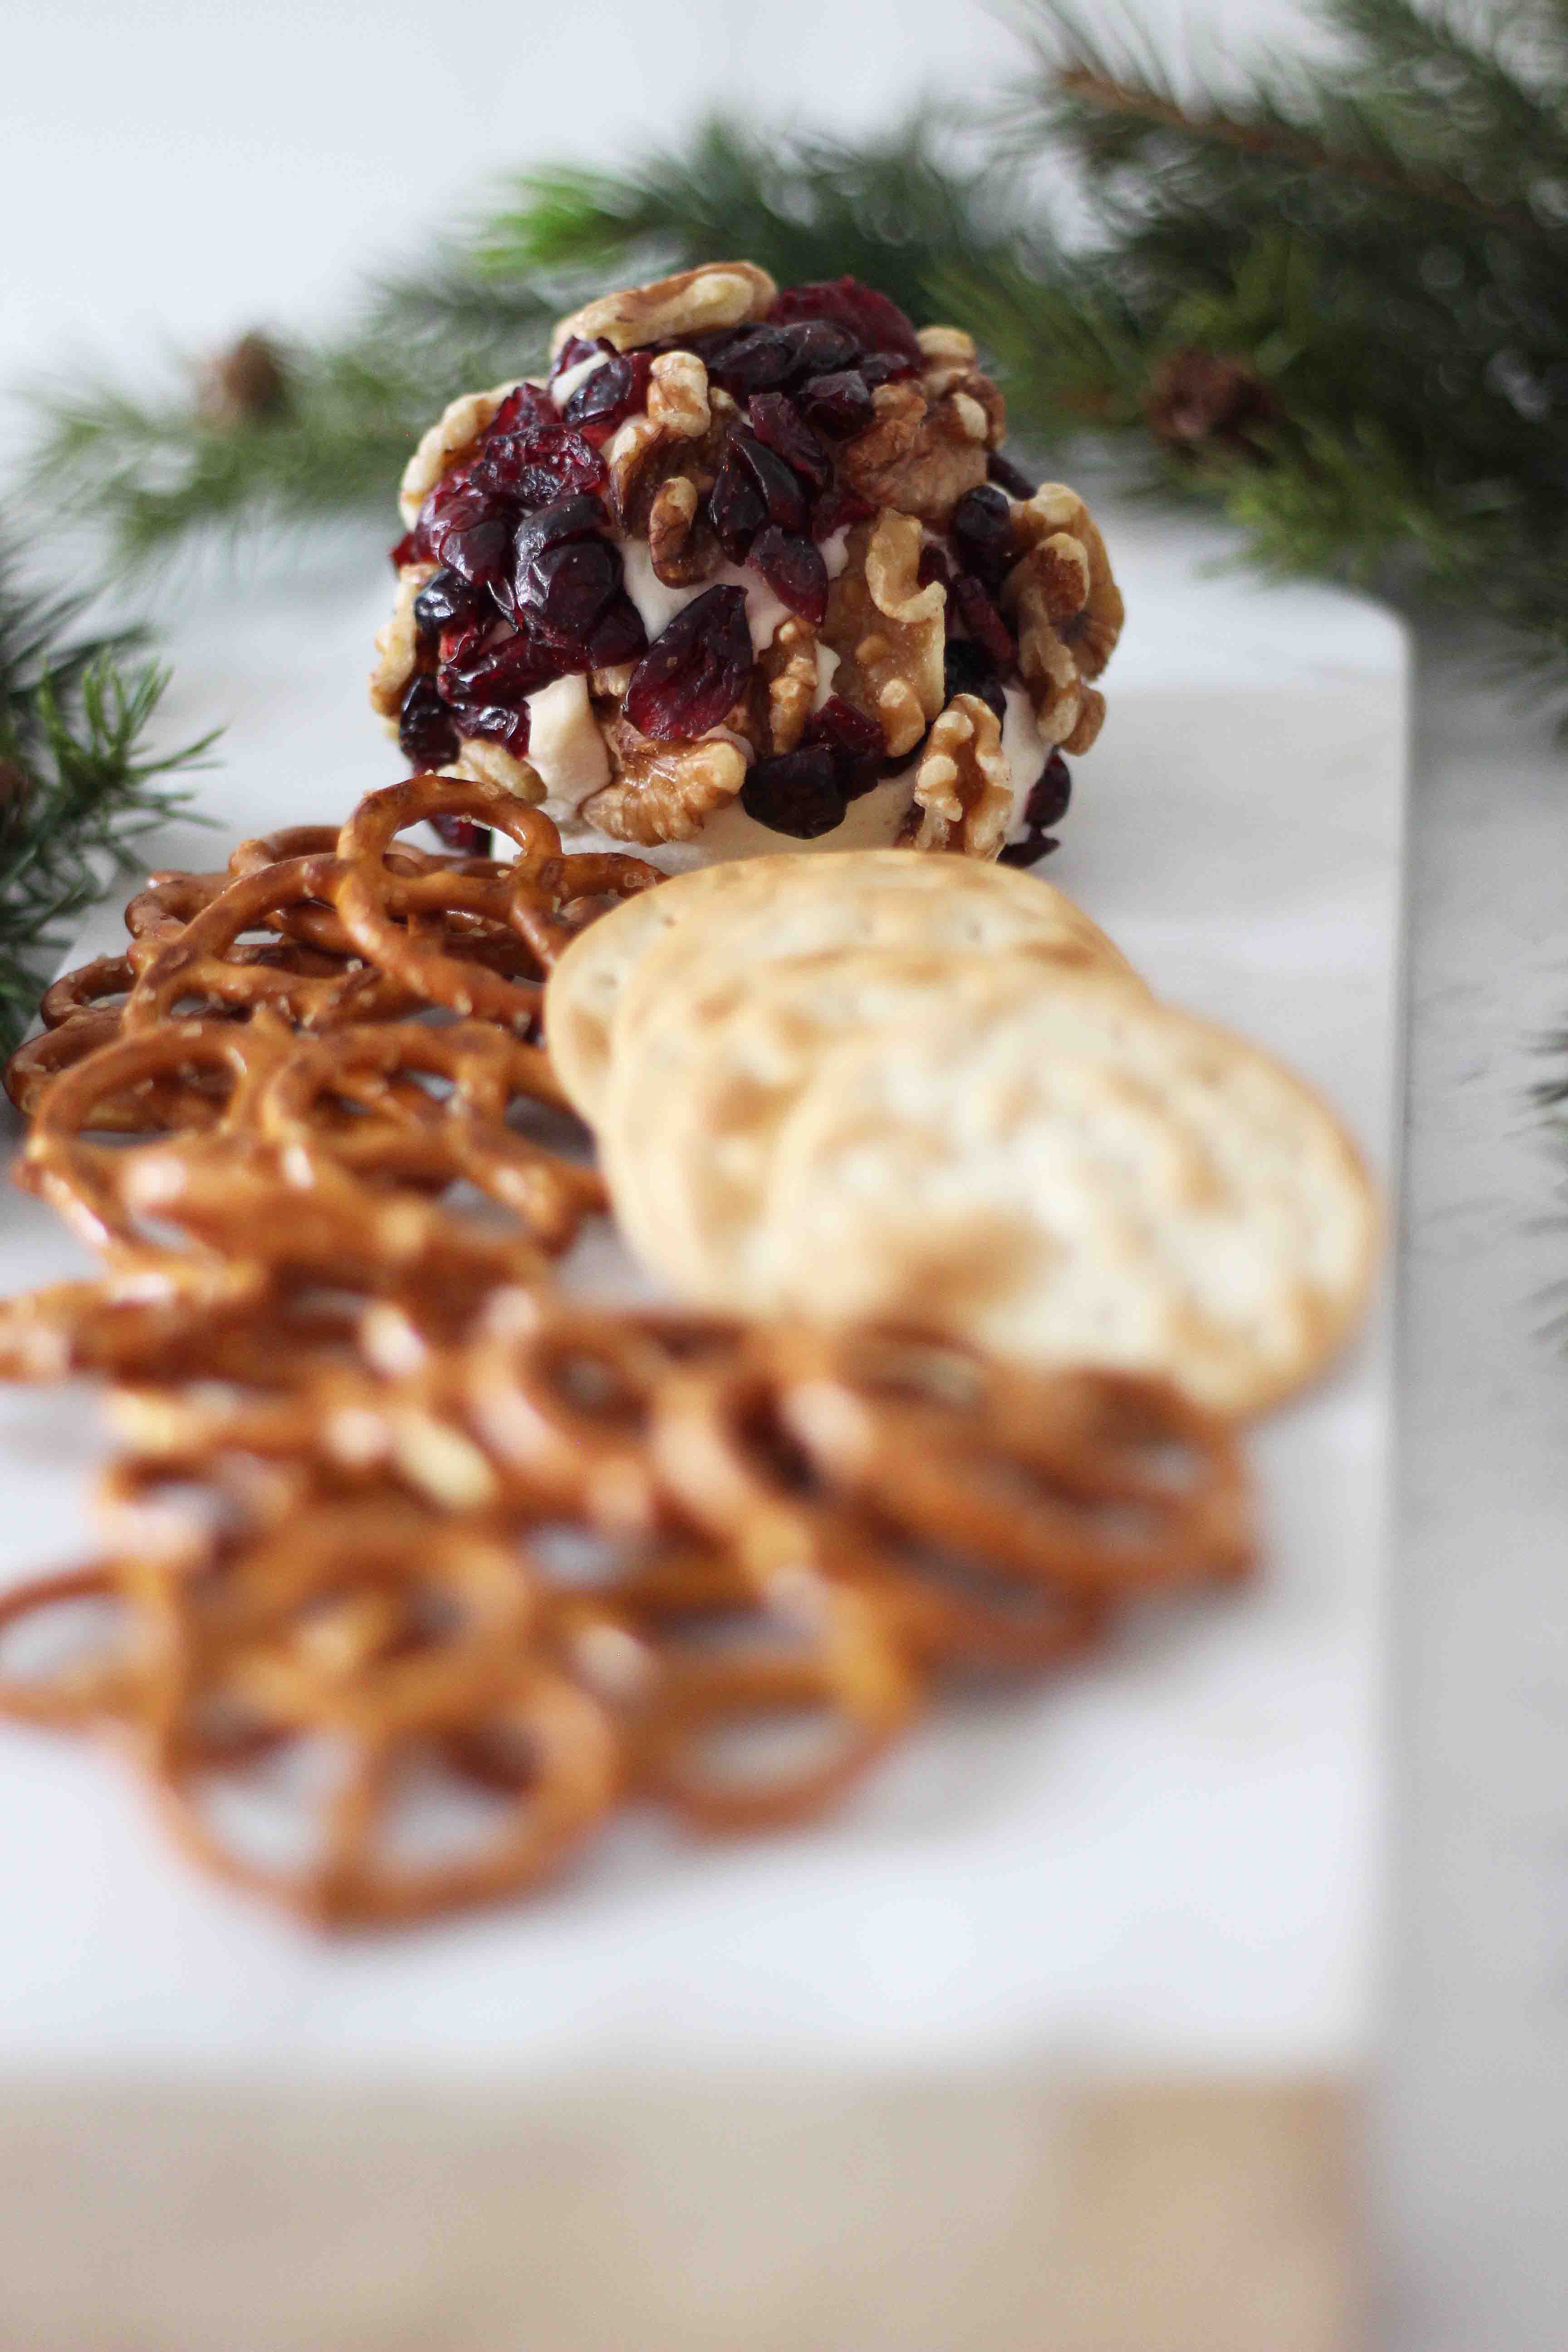 Canada Dry sangria drink ideas with holiday cheeseball